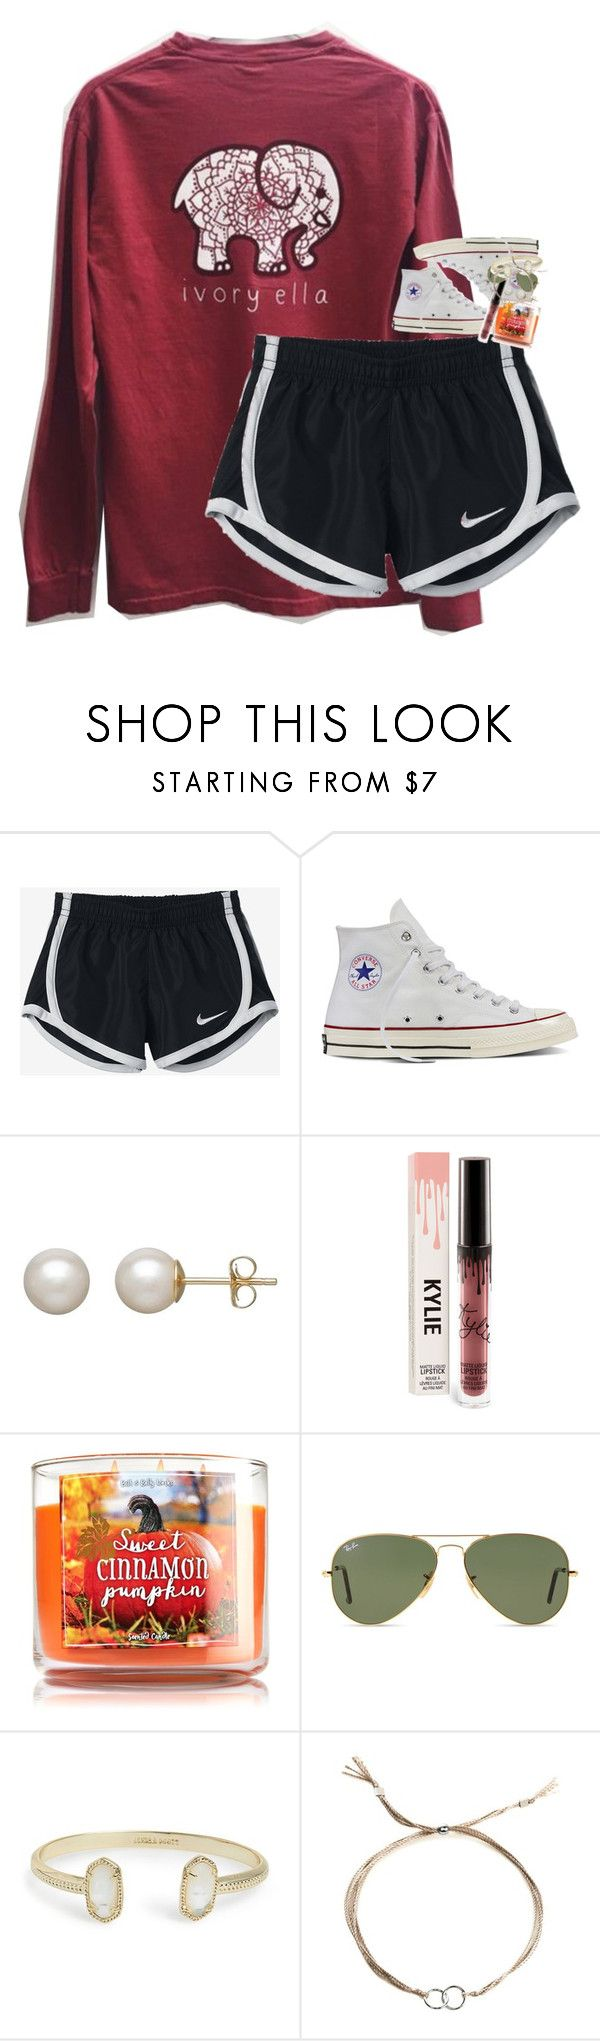 """what do you see your future career being?"" by classynsouthern ❤ liked on Polyvore featuring NIKE, Converse, Honora, Ray-Ban, Kendra Scott and Dogeared"